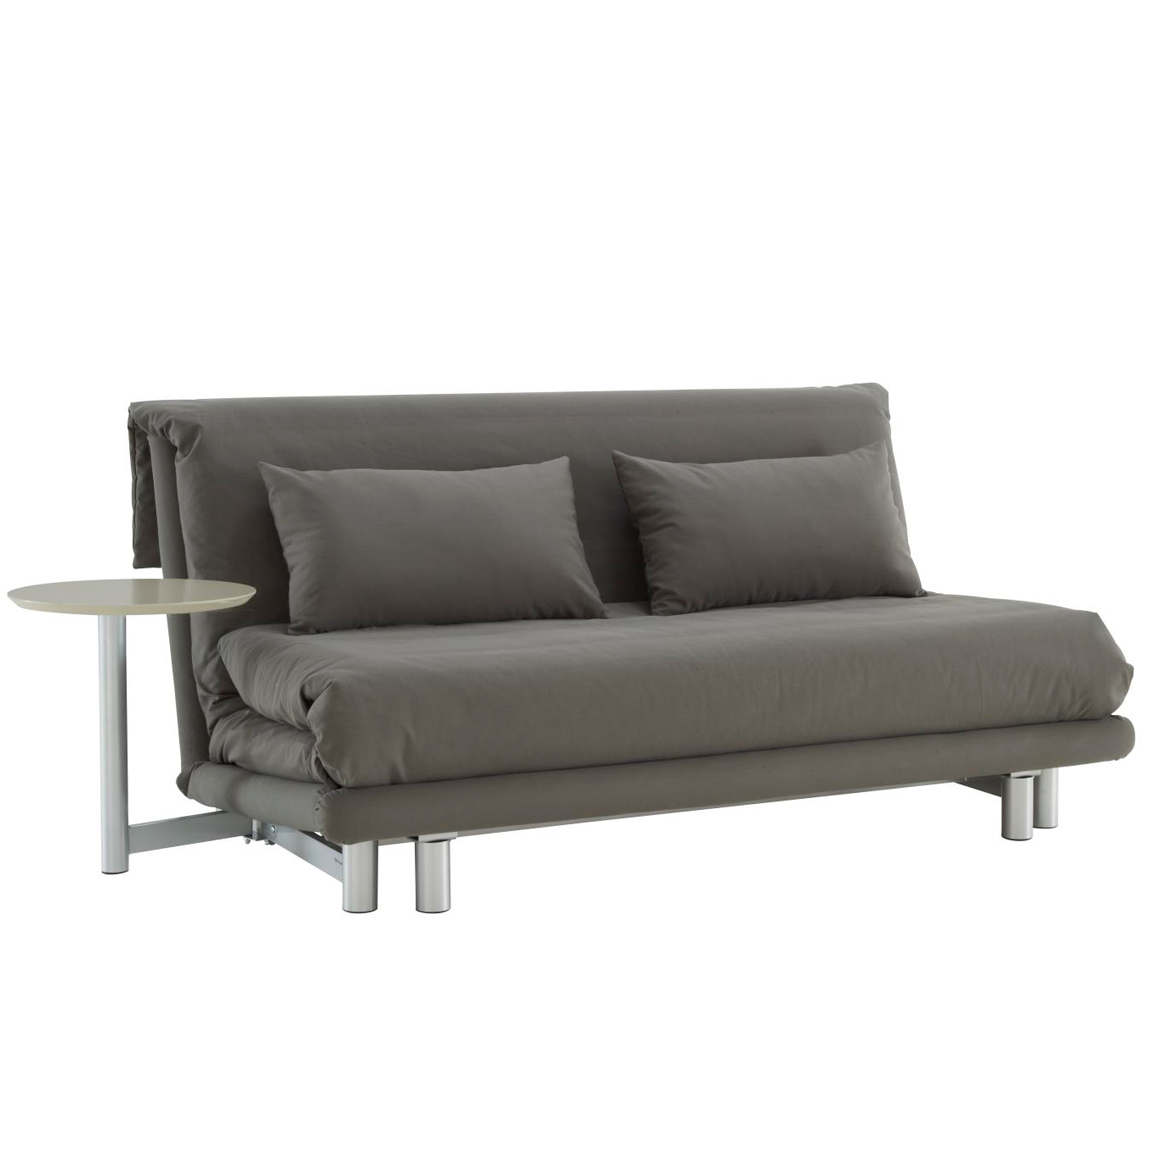 ligne roset sofa bed multy cabinets matttroy. Black Bedroom Furniture Sets. Home Design Ideas